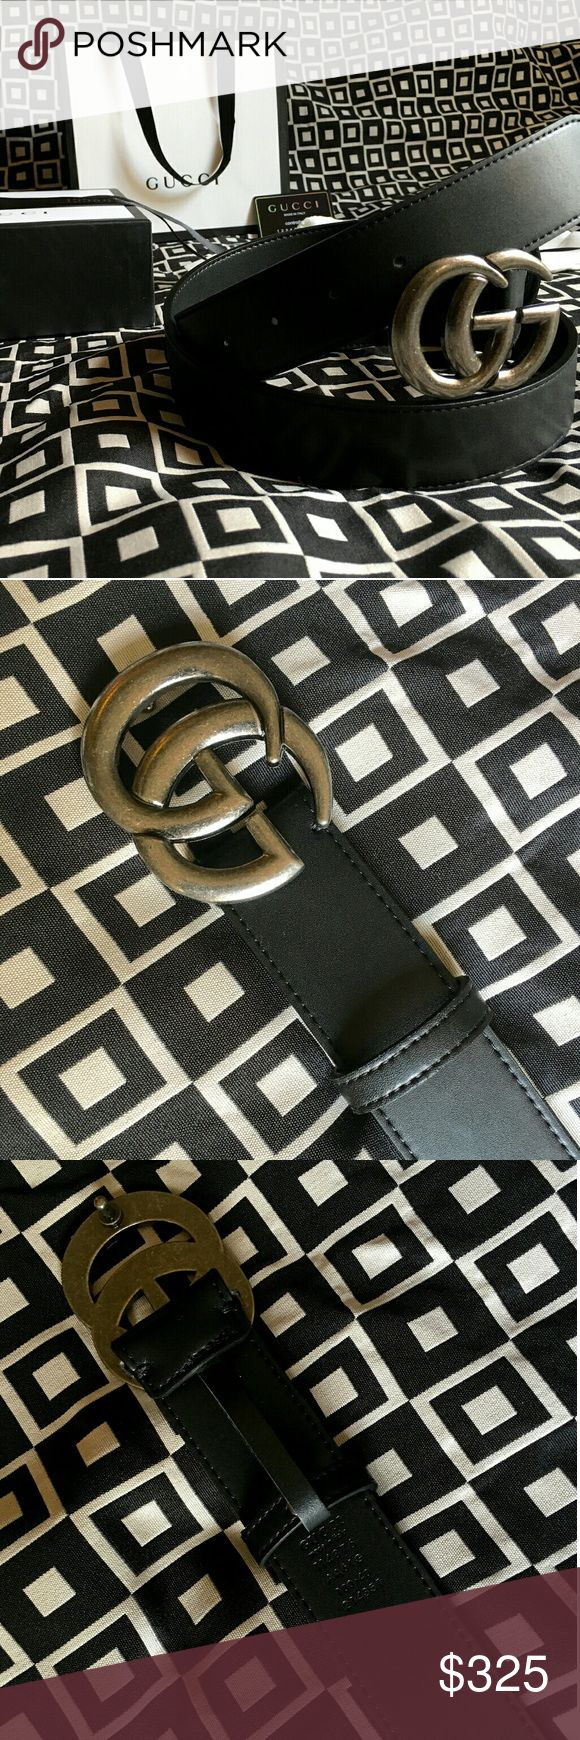 GUCCI GG BELT!!! Gucci GG Belt W/ Antique Silver Double G Buckle!!!  Brand New!!!  Unisex...For Man Or Woman!!!  Size Available - 34, 36, 38, 40, 42!!!  Includes Gucci Belt, Gift Box, Dust Bag, Ribbon, Etc!!!  Great Gift Idea!!!  Last Available!!!  Check My Listings For Other Great Items!!!             Ignore: Gucci gg monogram casual dress belts men's women's guccissma leather monogram web tiger bee embossed panther wool cable knit blooms supreme print angry cat ufo dragon studded snake…